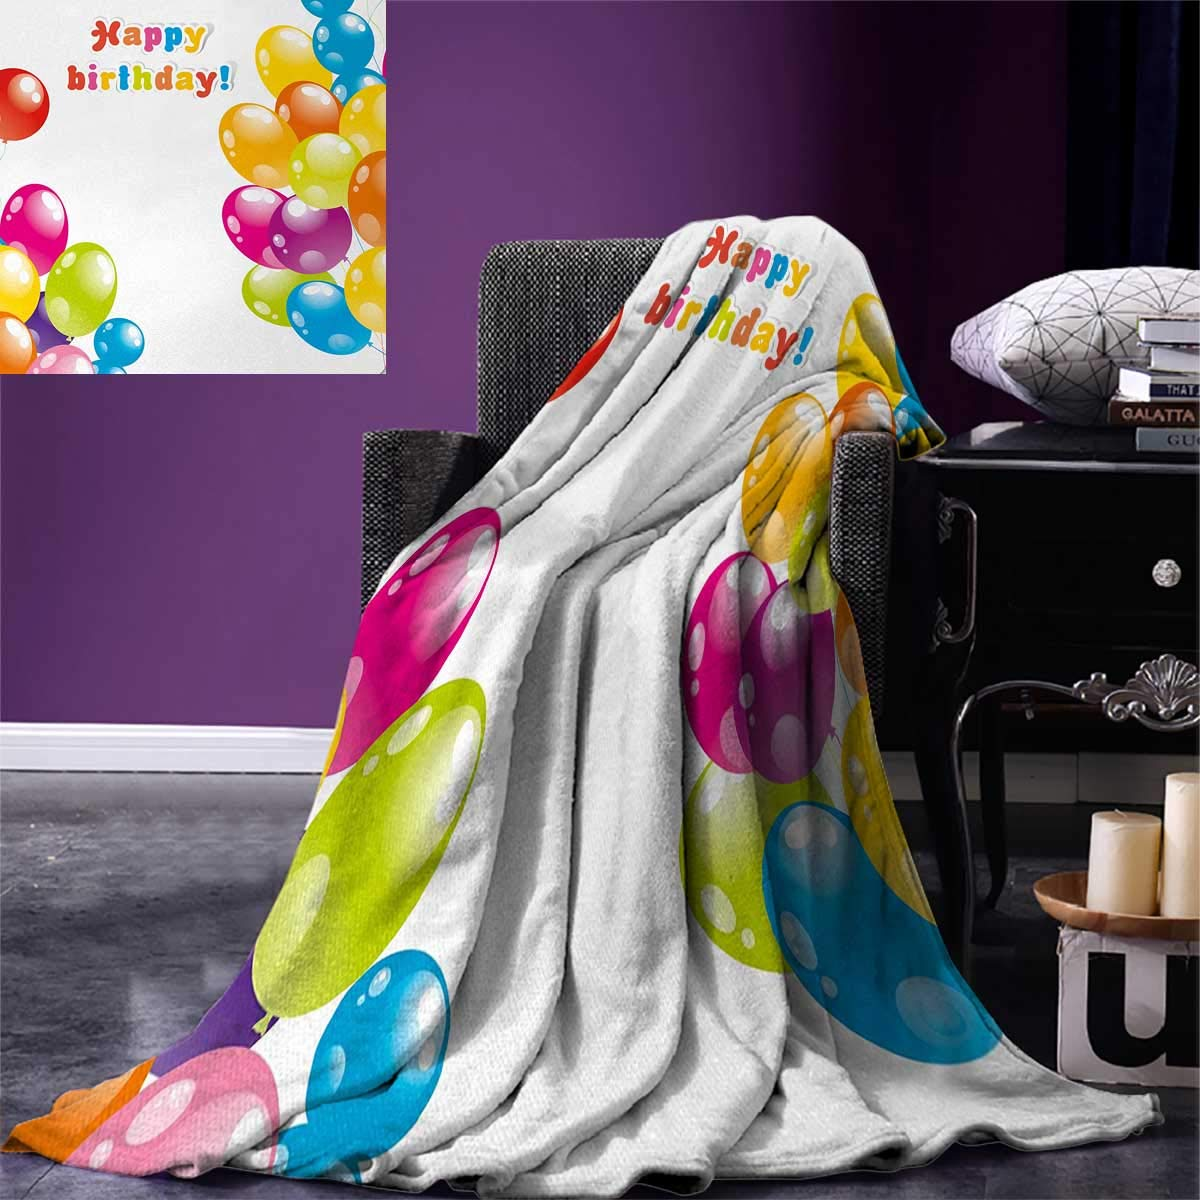 Birthday Digital Printing Blanket Colorful Festive Mood Flying Party Balloons in Surprise Happy Occasion Set Up Summer Quilt Comforter 80''x60'' Multicolor